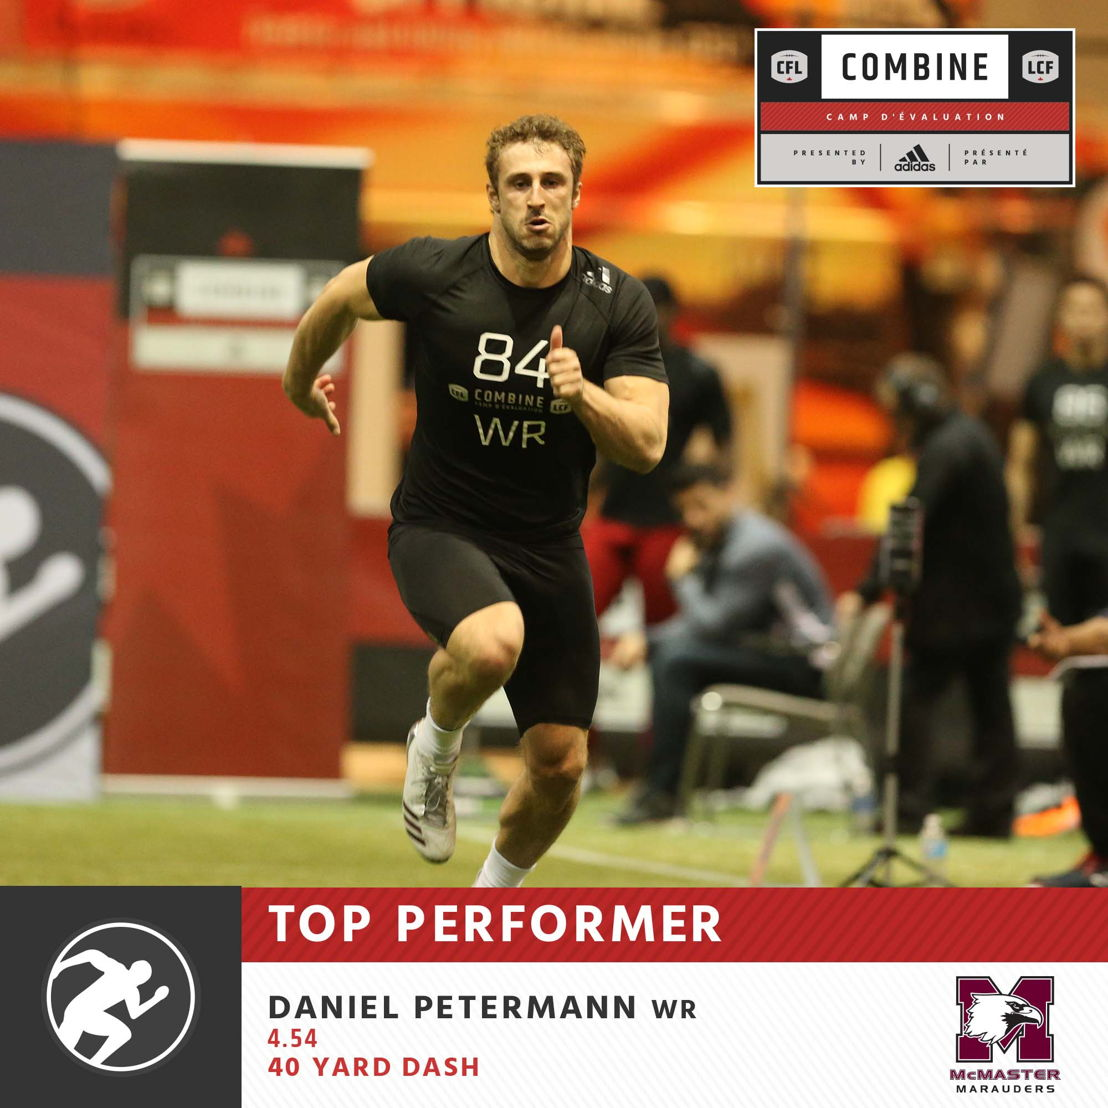 Daniel Petermann with the fastest 40-yard time at the CFL Combine presented by adidas.